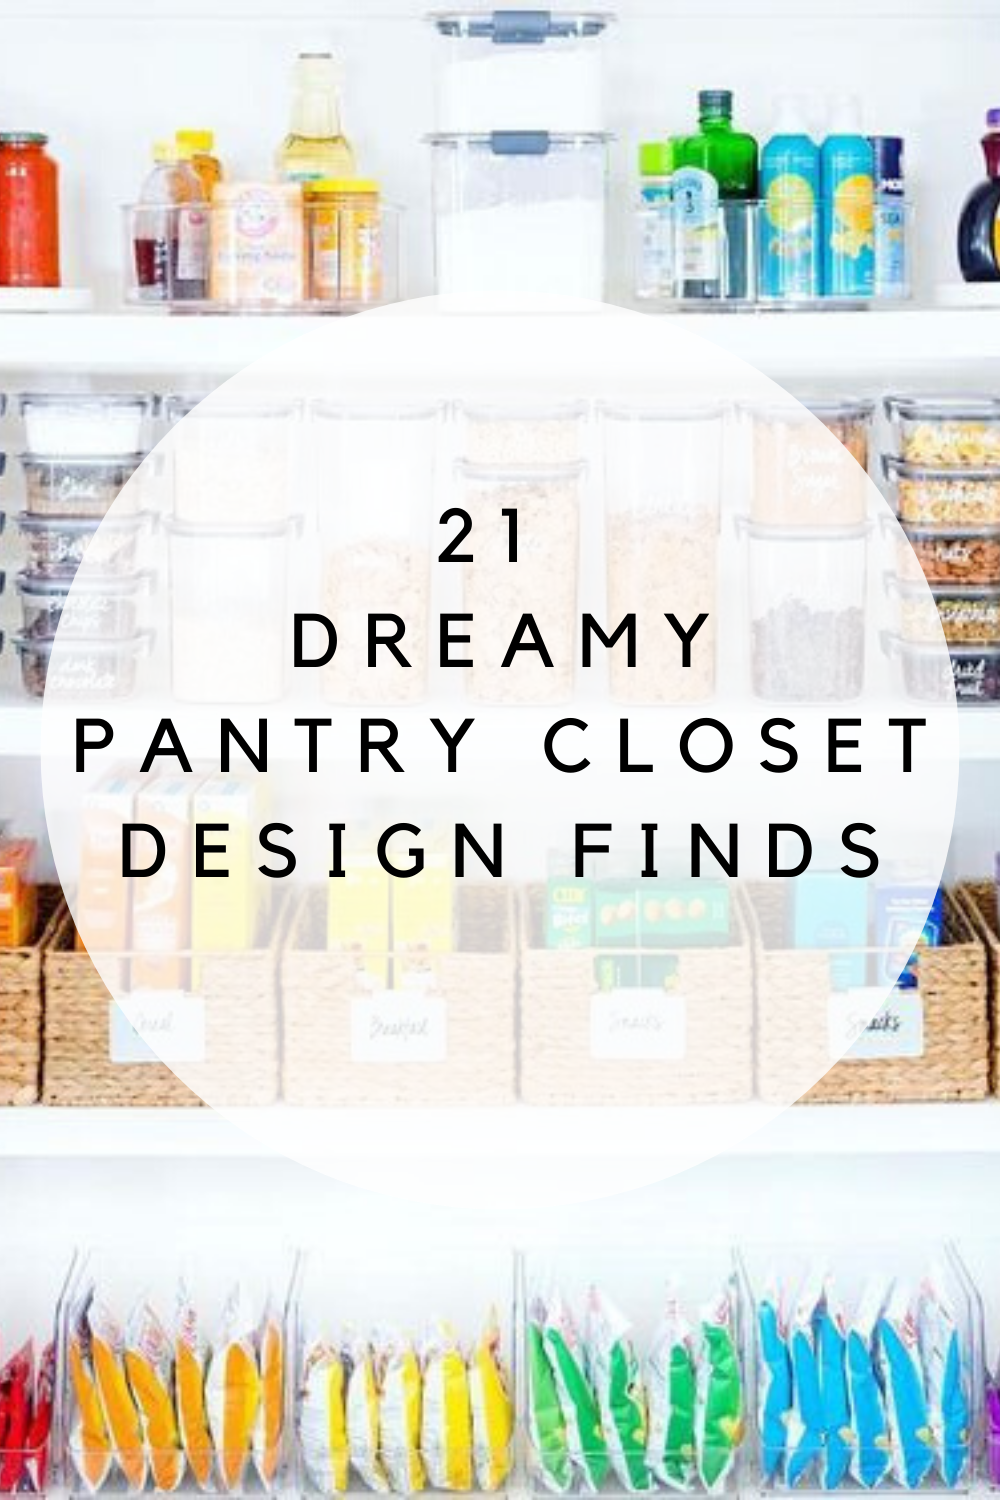 pantry closet design finds